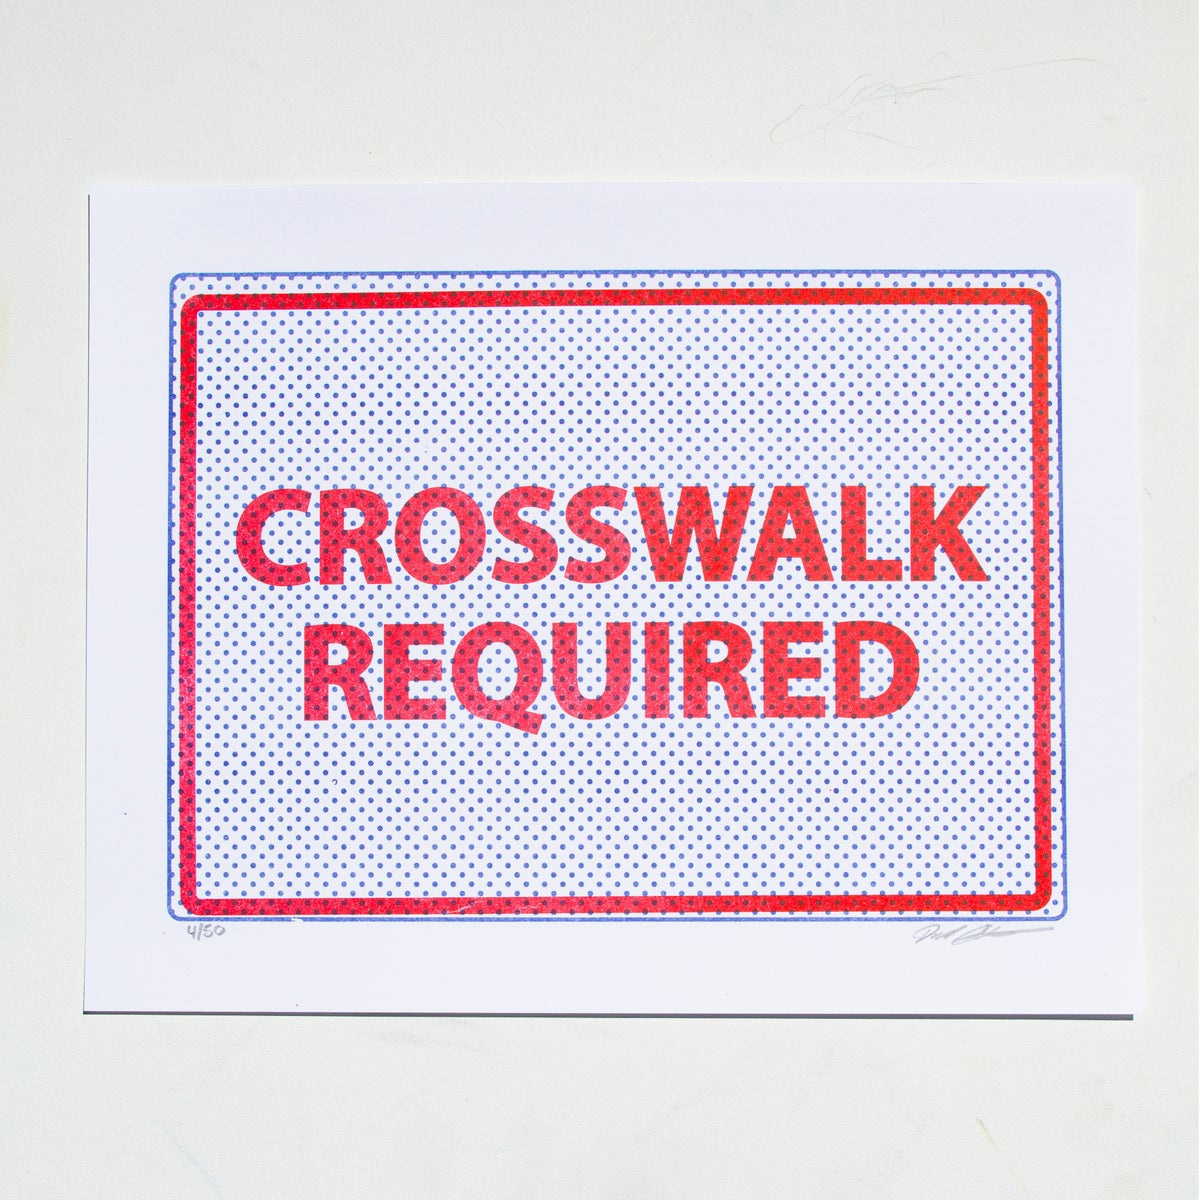 Image of Crosswalk Required